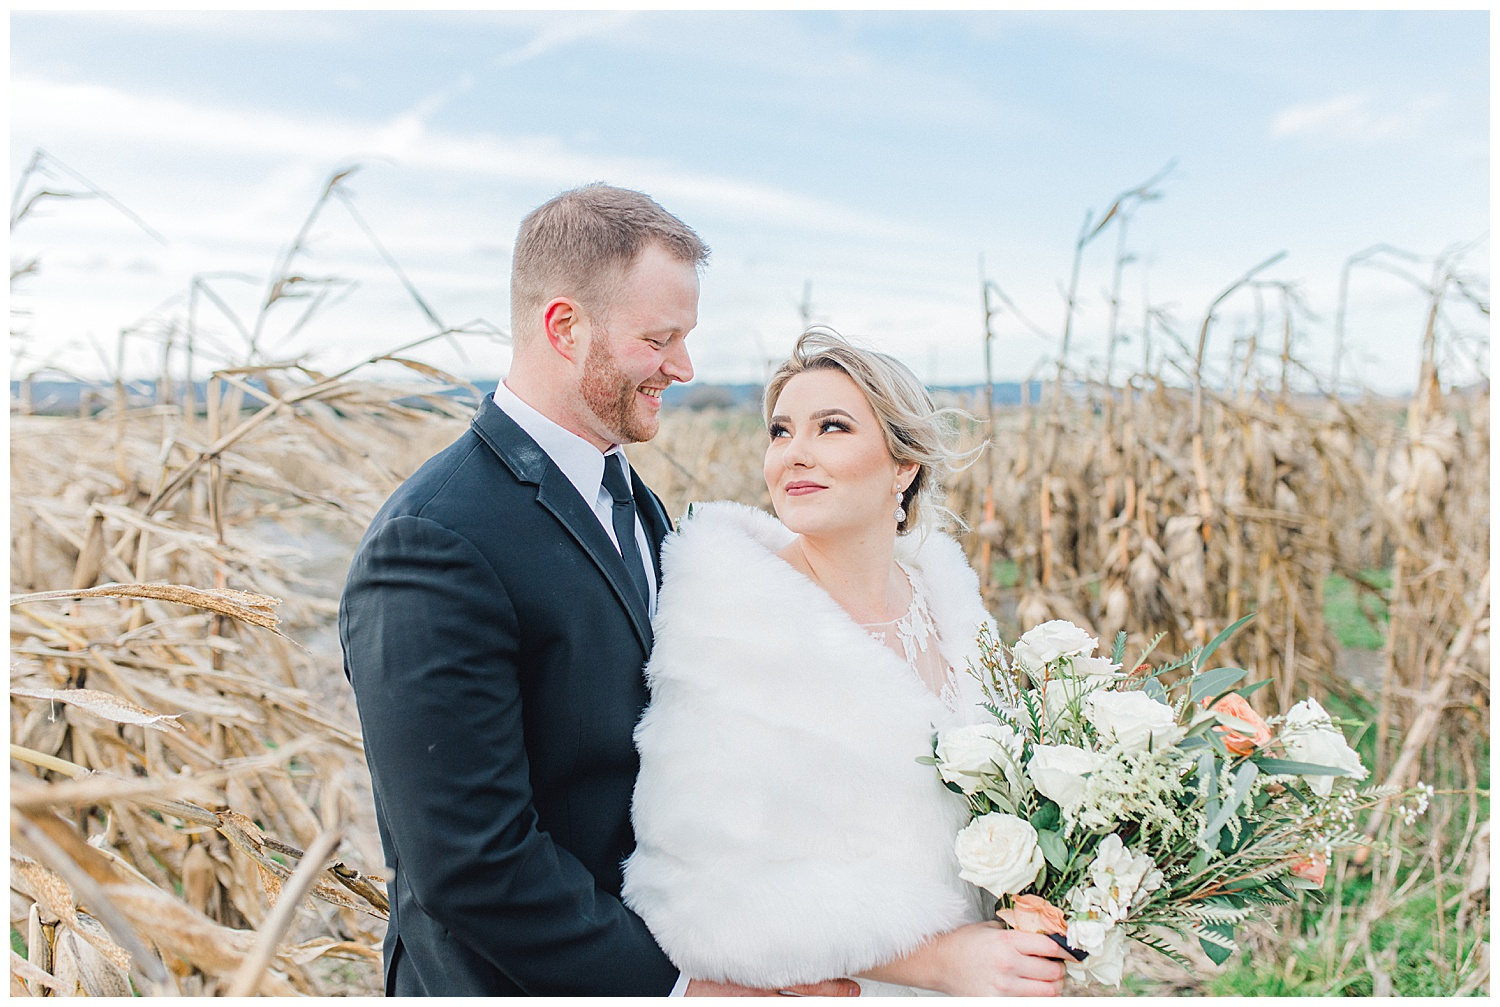 ERC-7506_A beautiful winter wedding in Snohomish, Washington at Thomas Family Farm was simply perfect.  This rustic and modern styled wedding was dripping with romance and photographed by Emma Rose Company, a pacific northwest wedding photographer..jpg